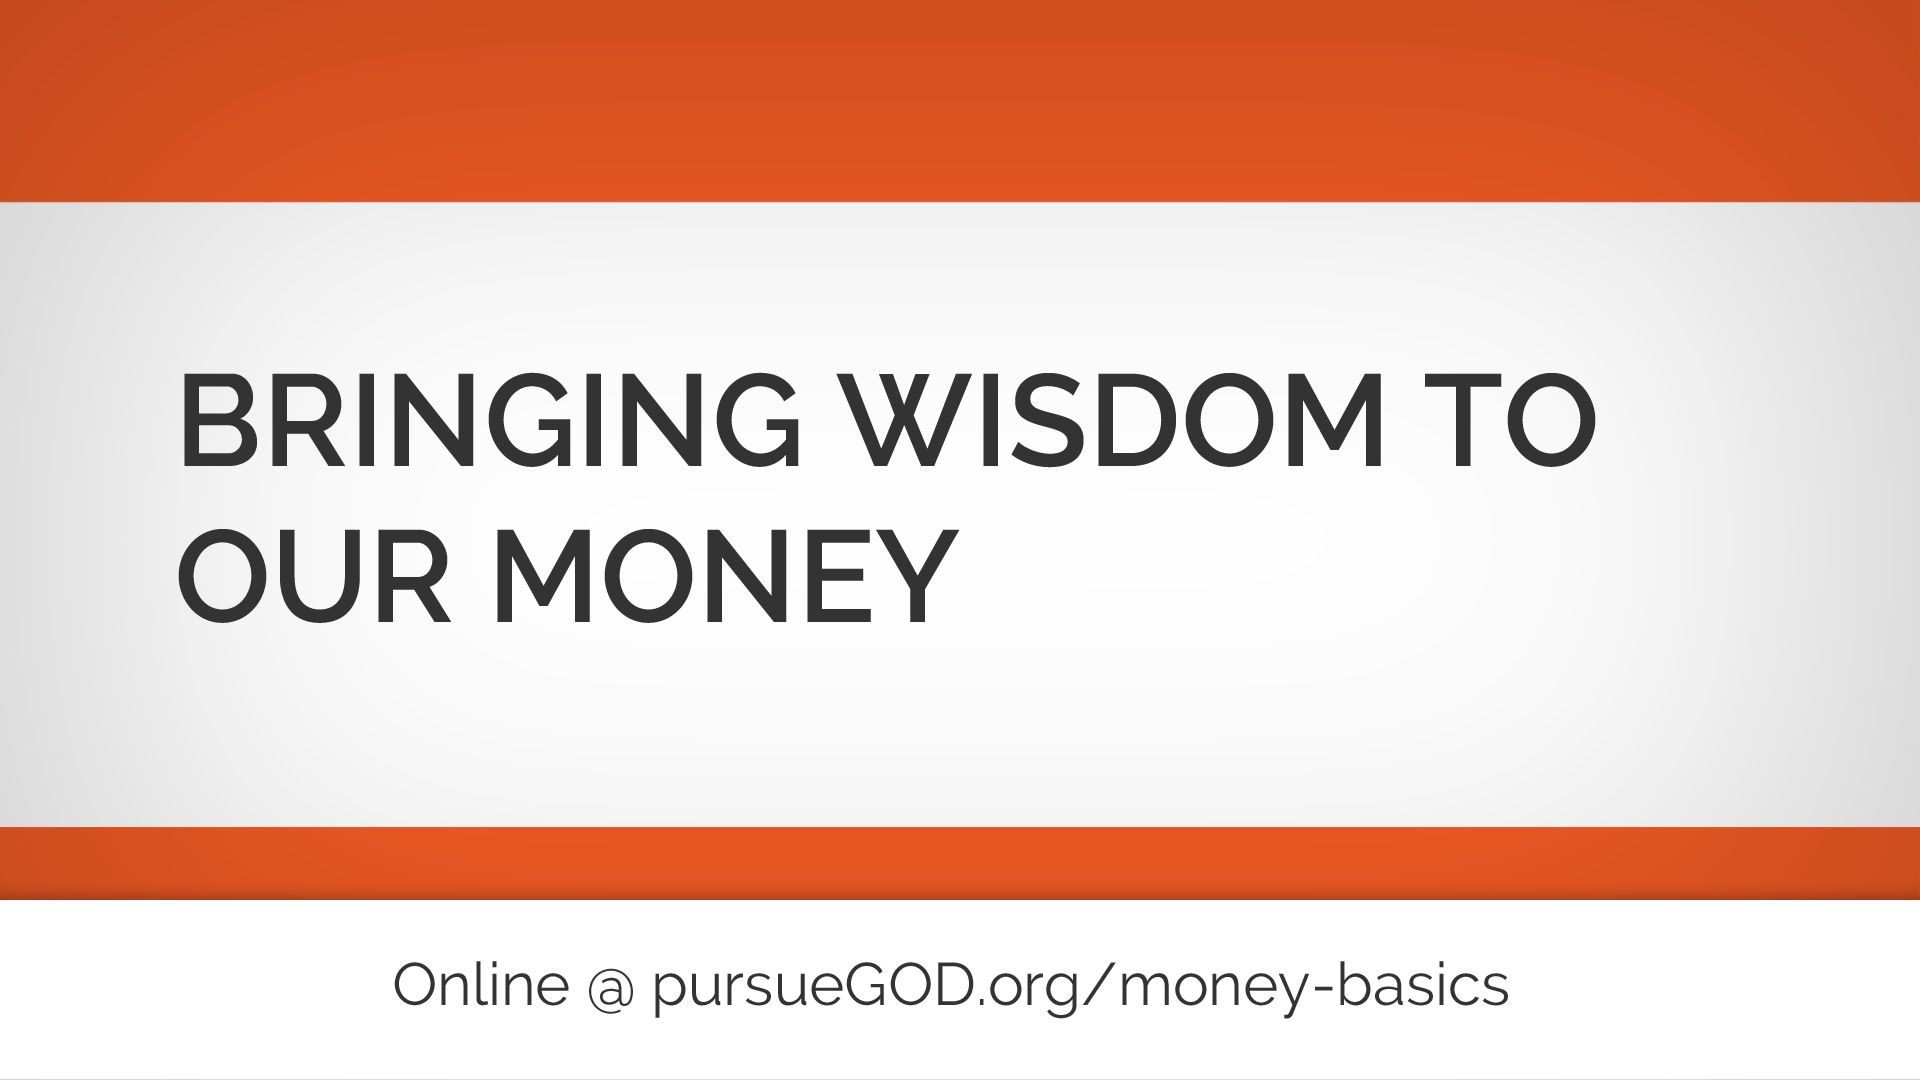 Money Basics: Bringing Wisdom to our Money